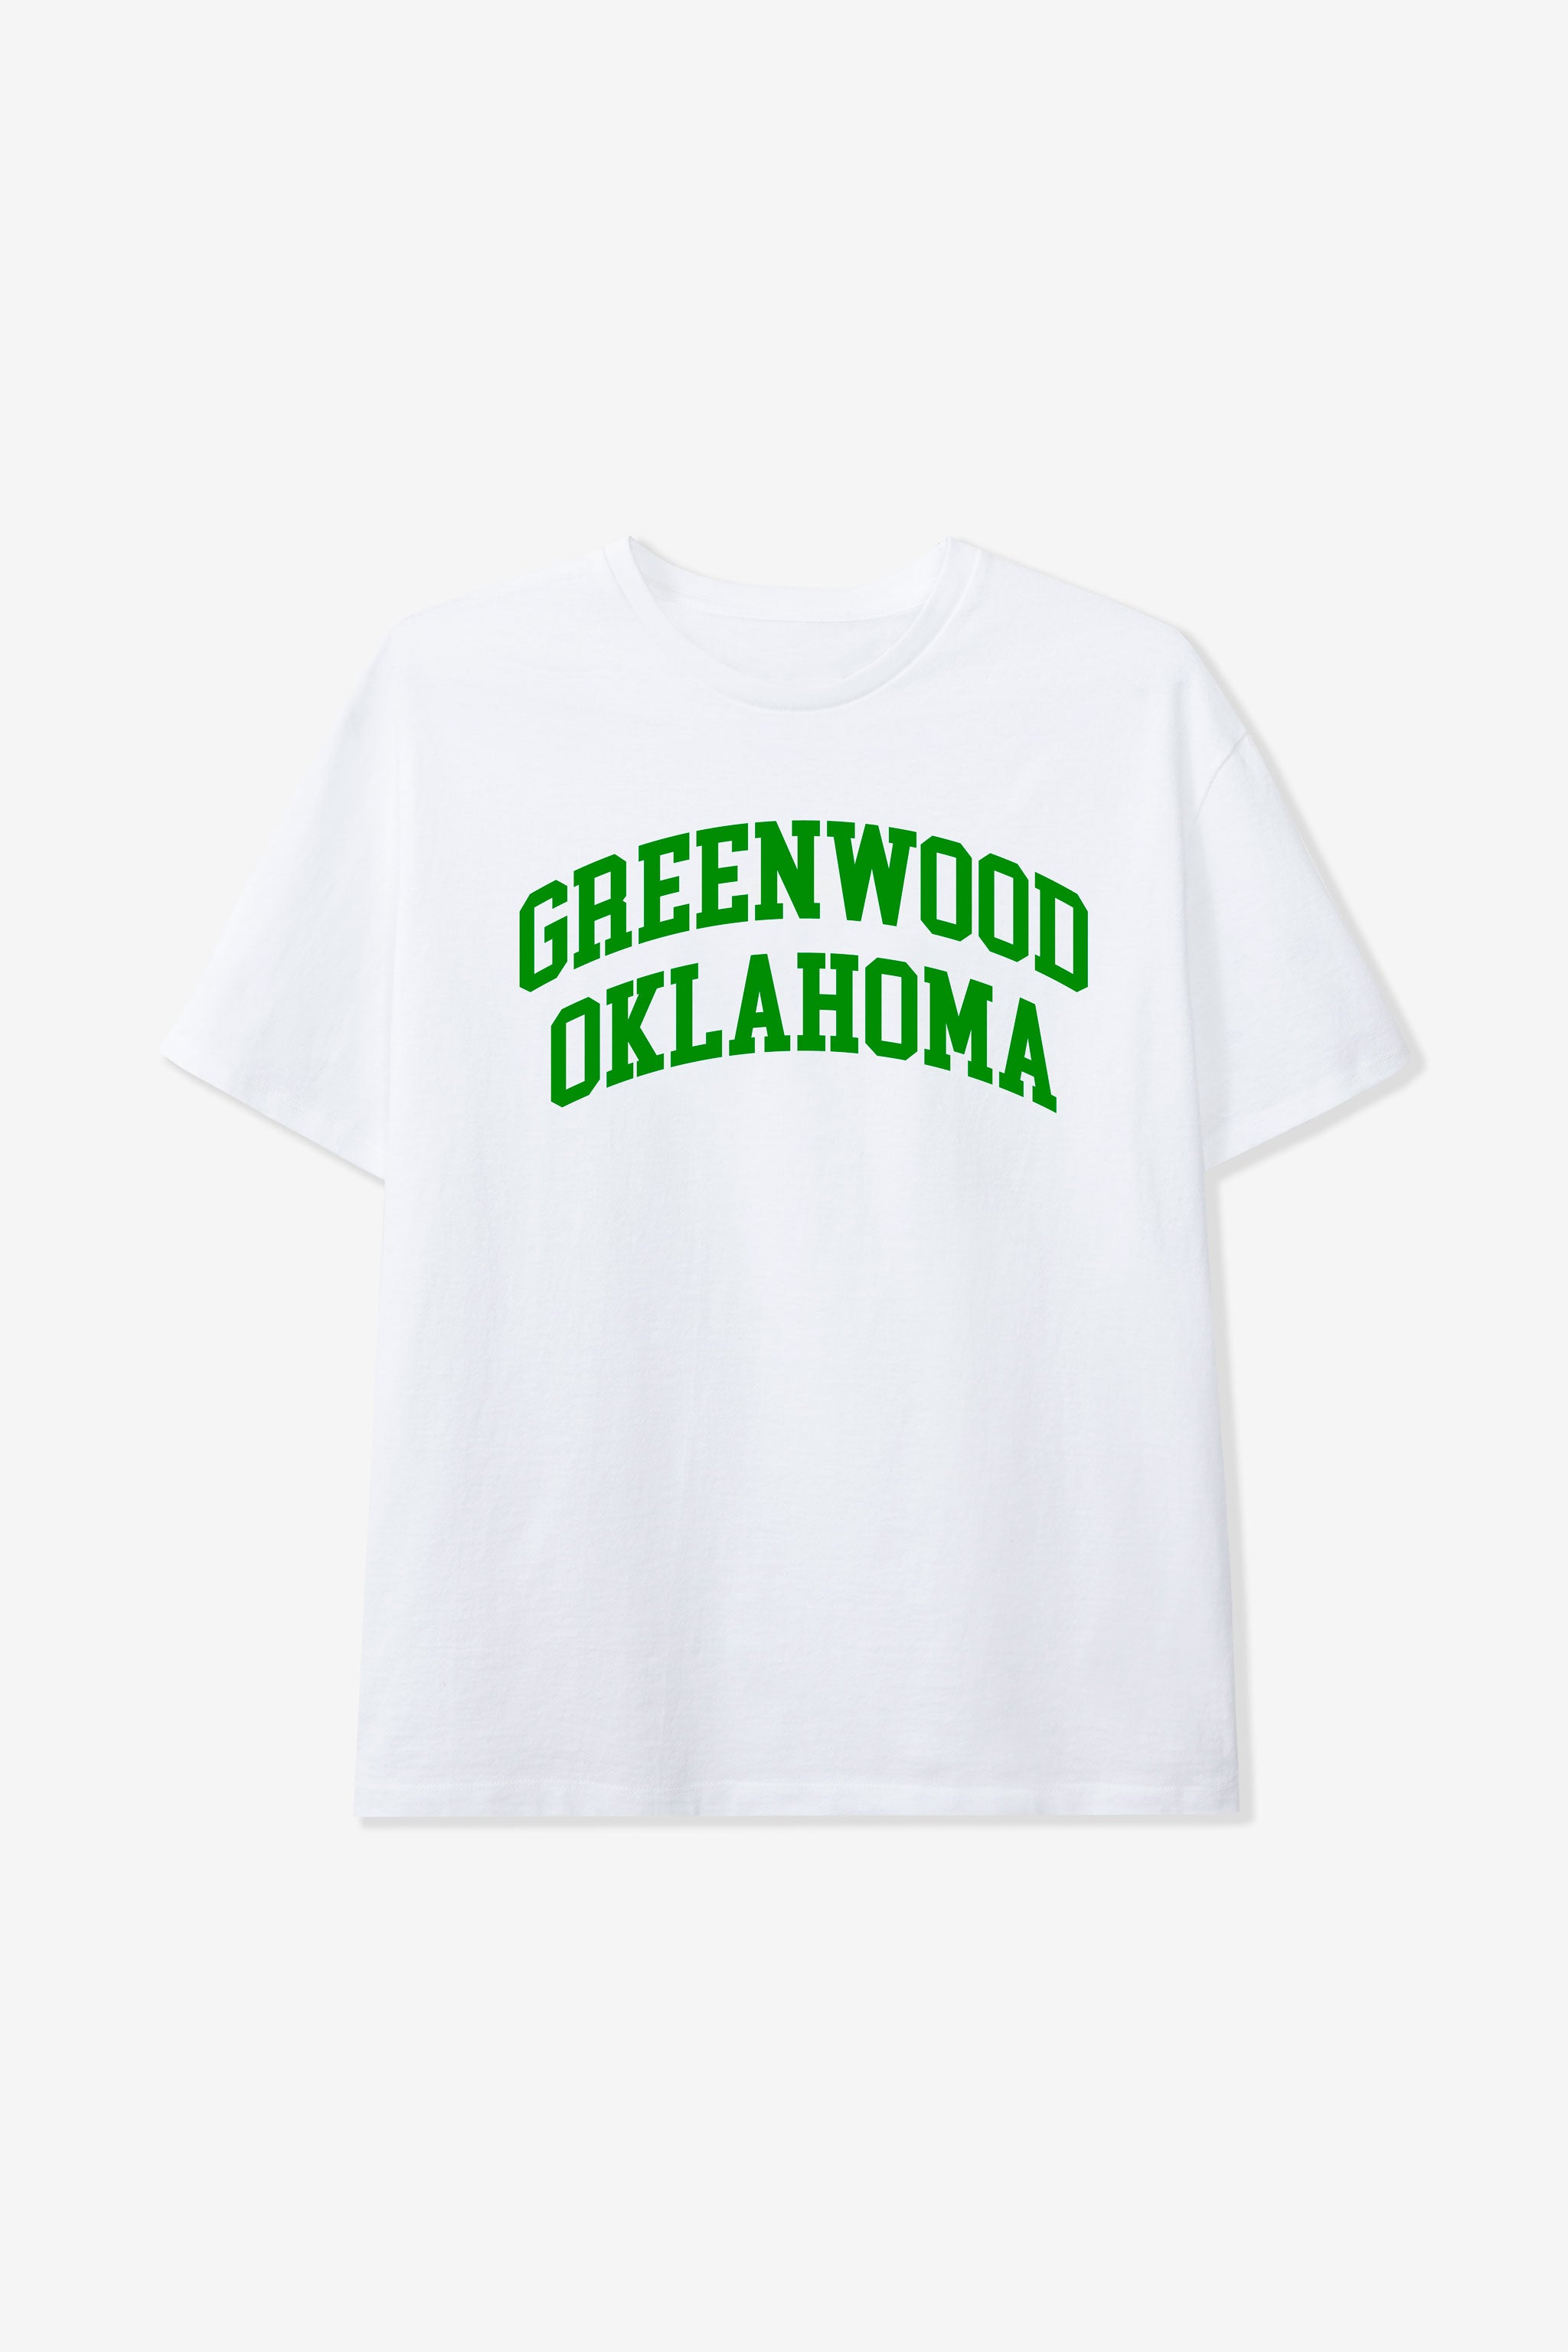 BUY BLACK FRIDAY GREENWOOD TEE